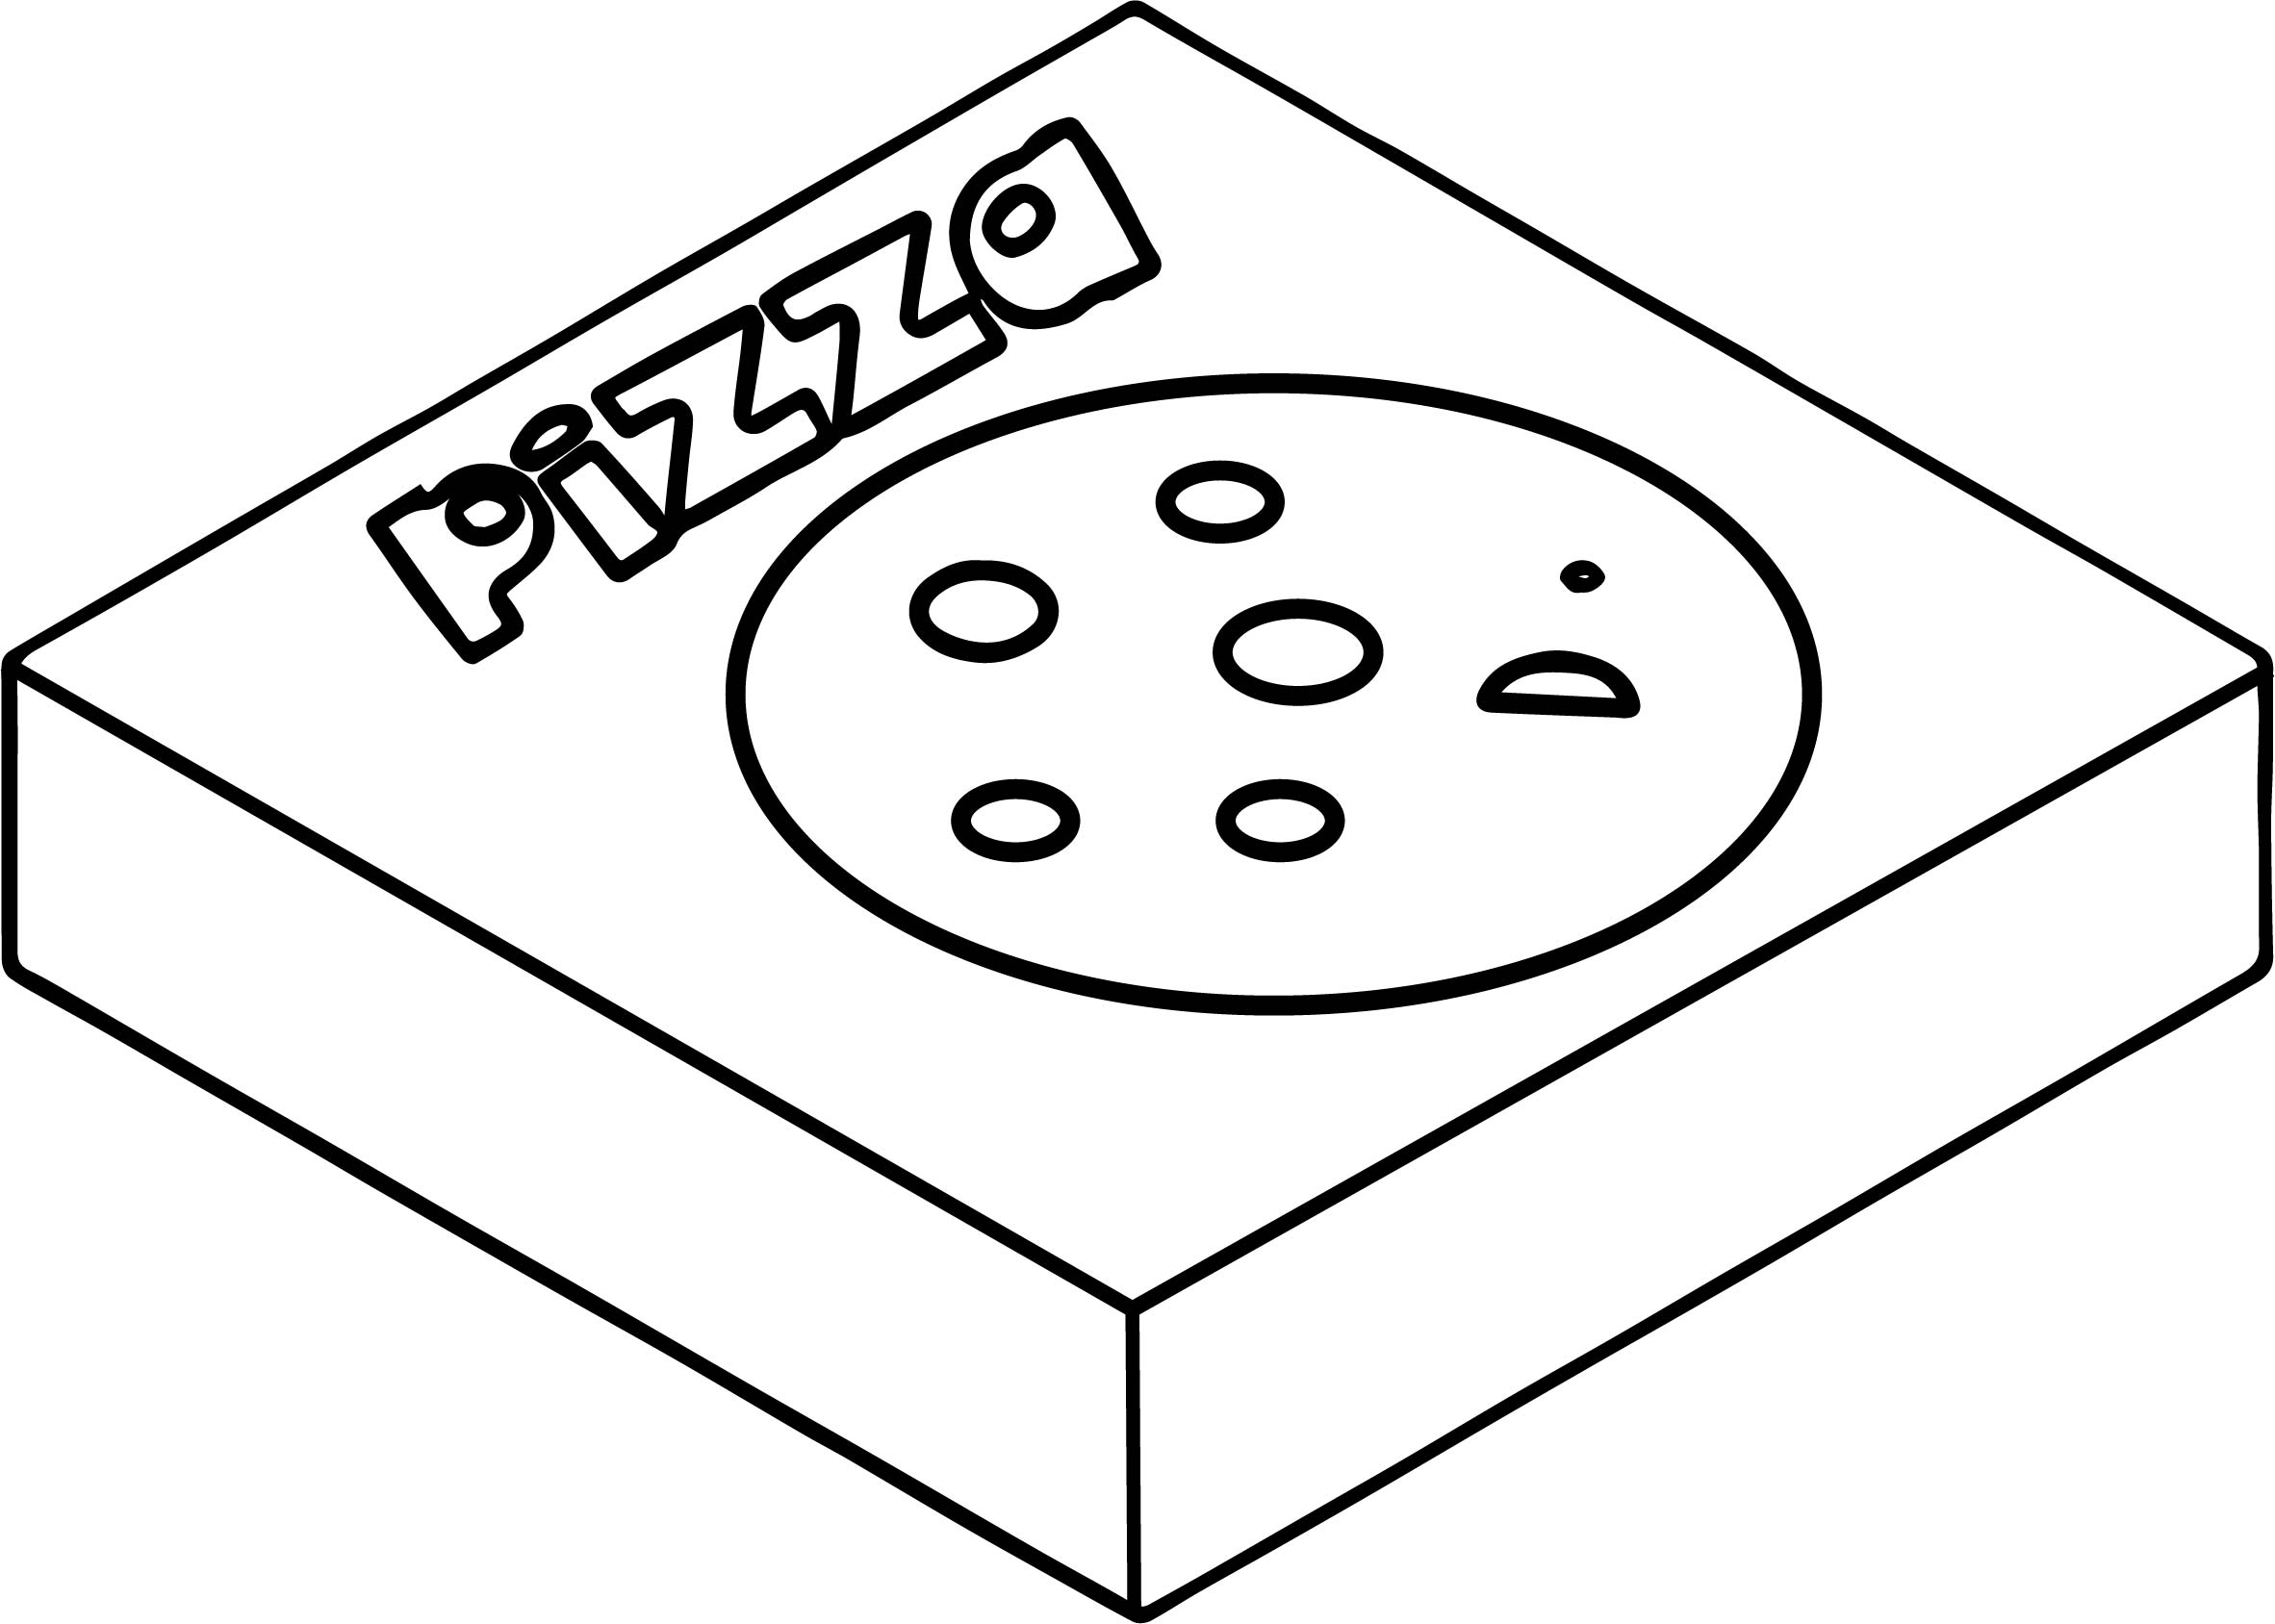 Illustration Of A Pizza Box Coloring Page